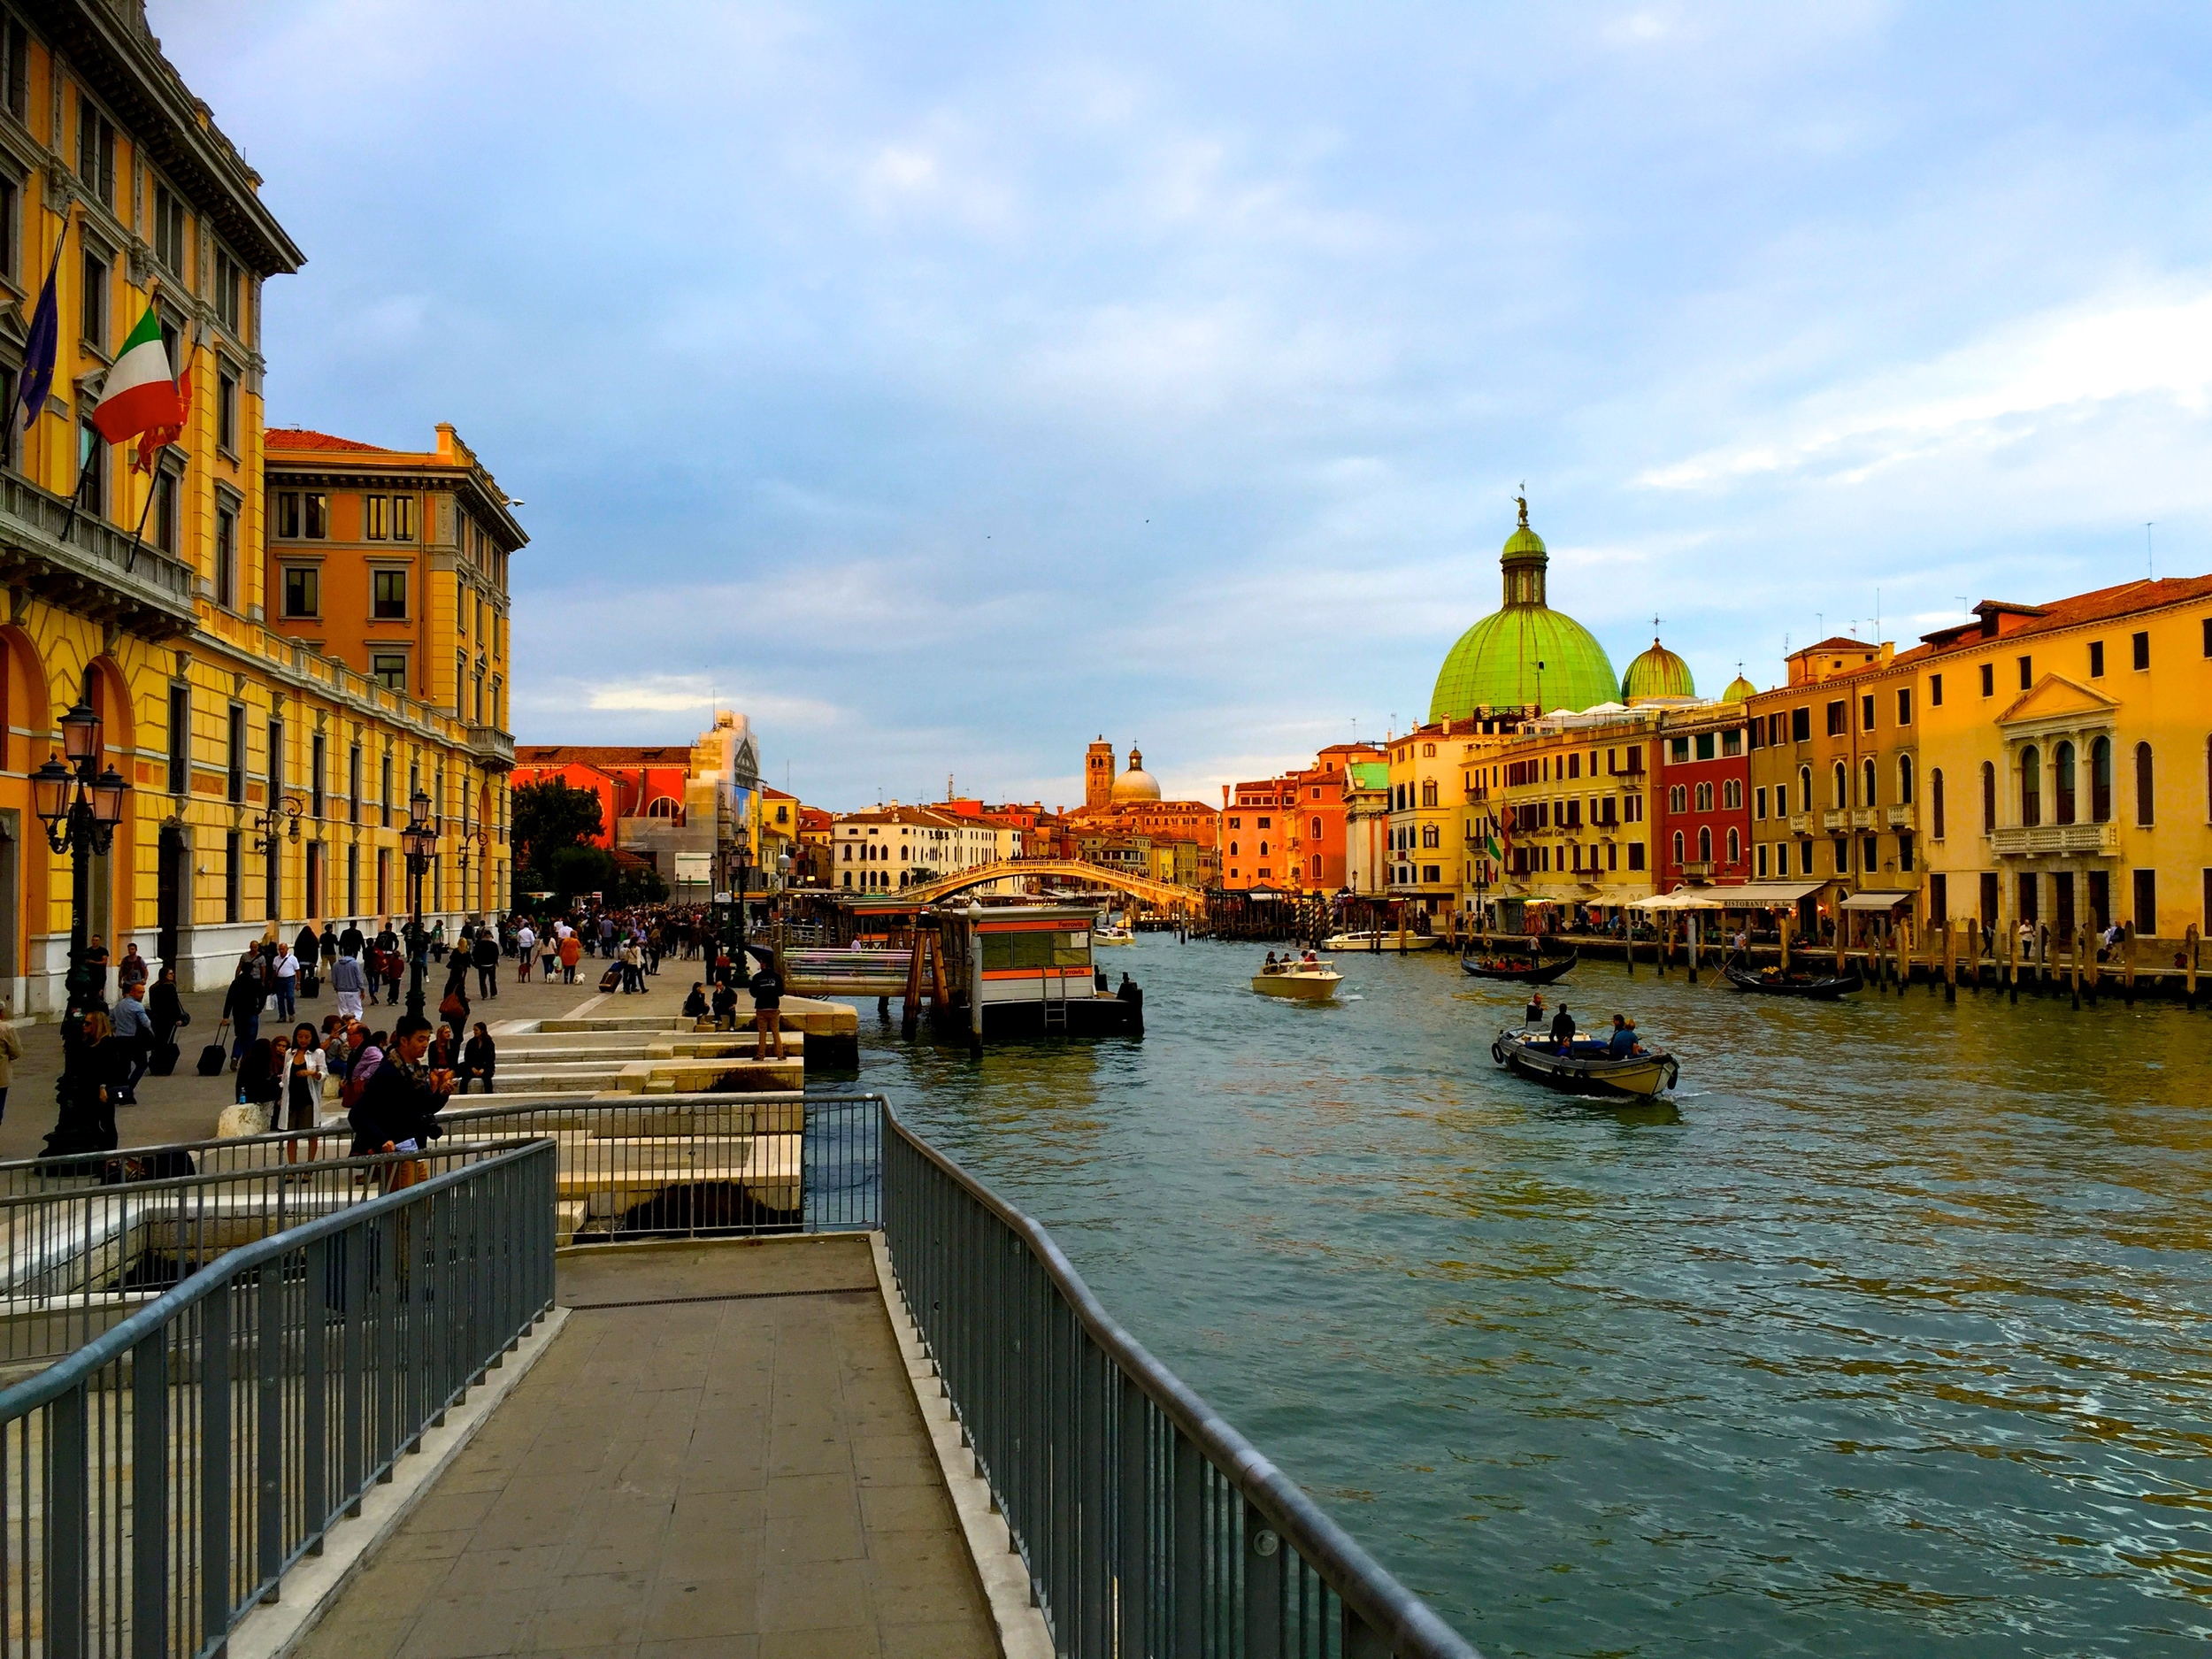 In Venice, you pretty much have to accept the fact that you will be getting to your destination by boat or foot